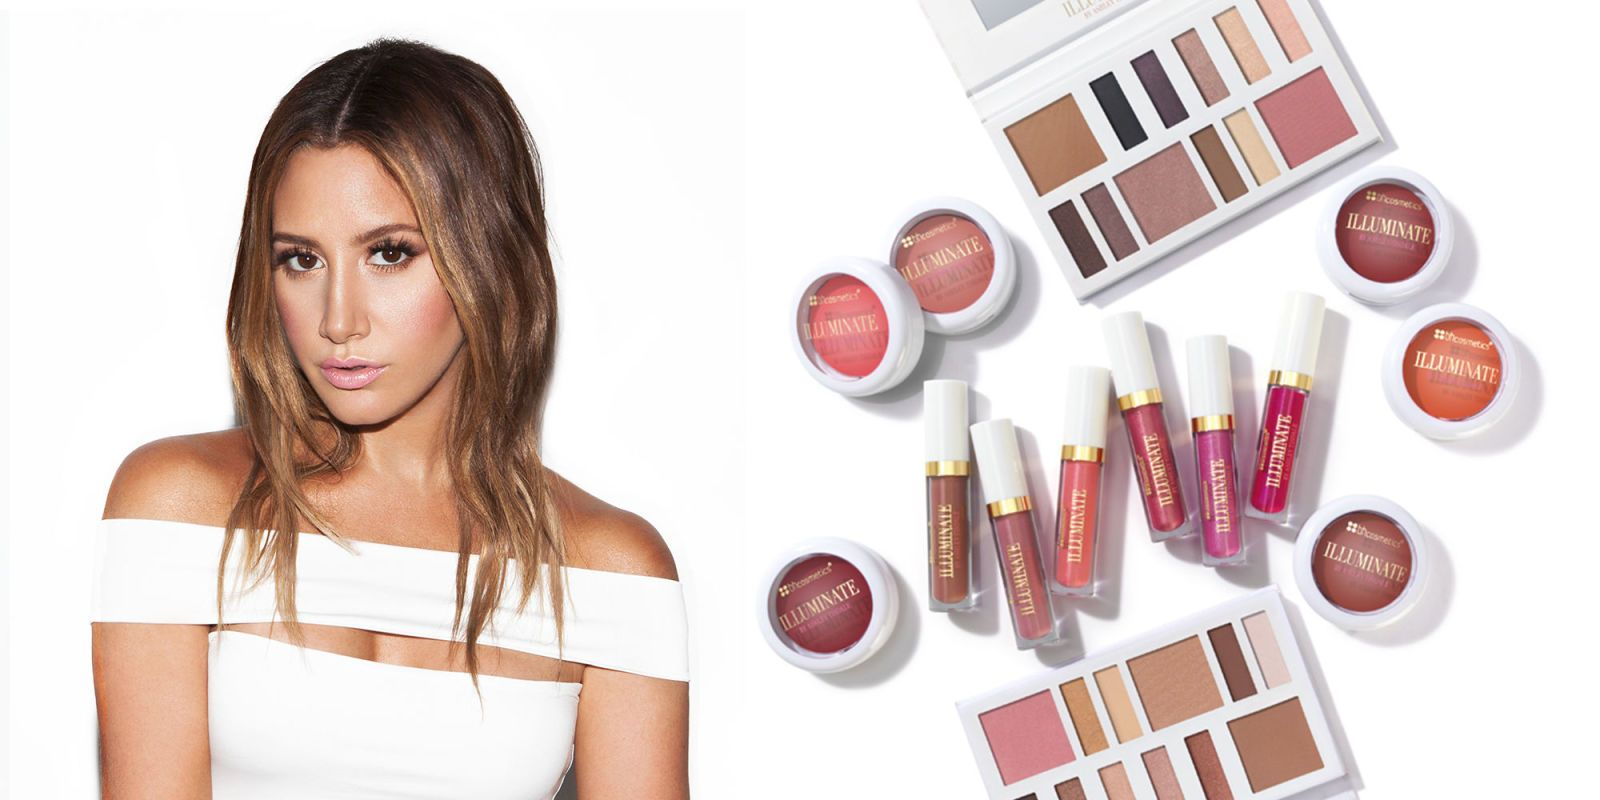 Get the Exclusive on Ashley Tisdale's Illuminate Summer